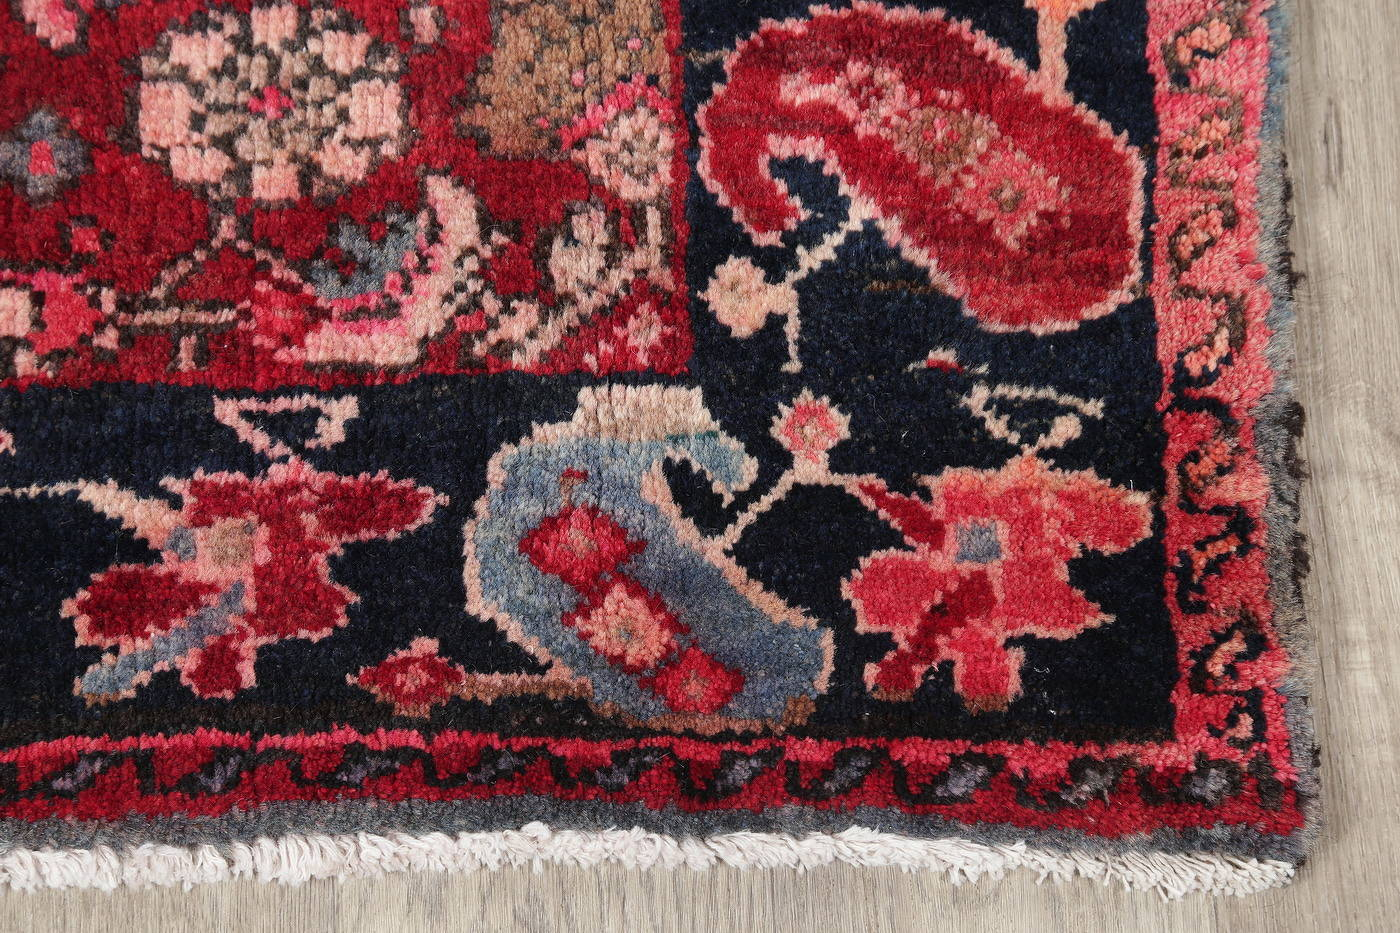 Hand-Knotted Red Geometric Heriz Persian Area Rug Wool 4x5 image 6